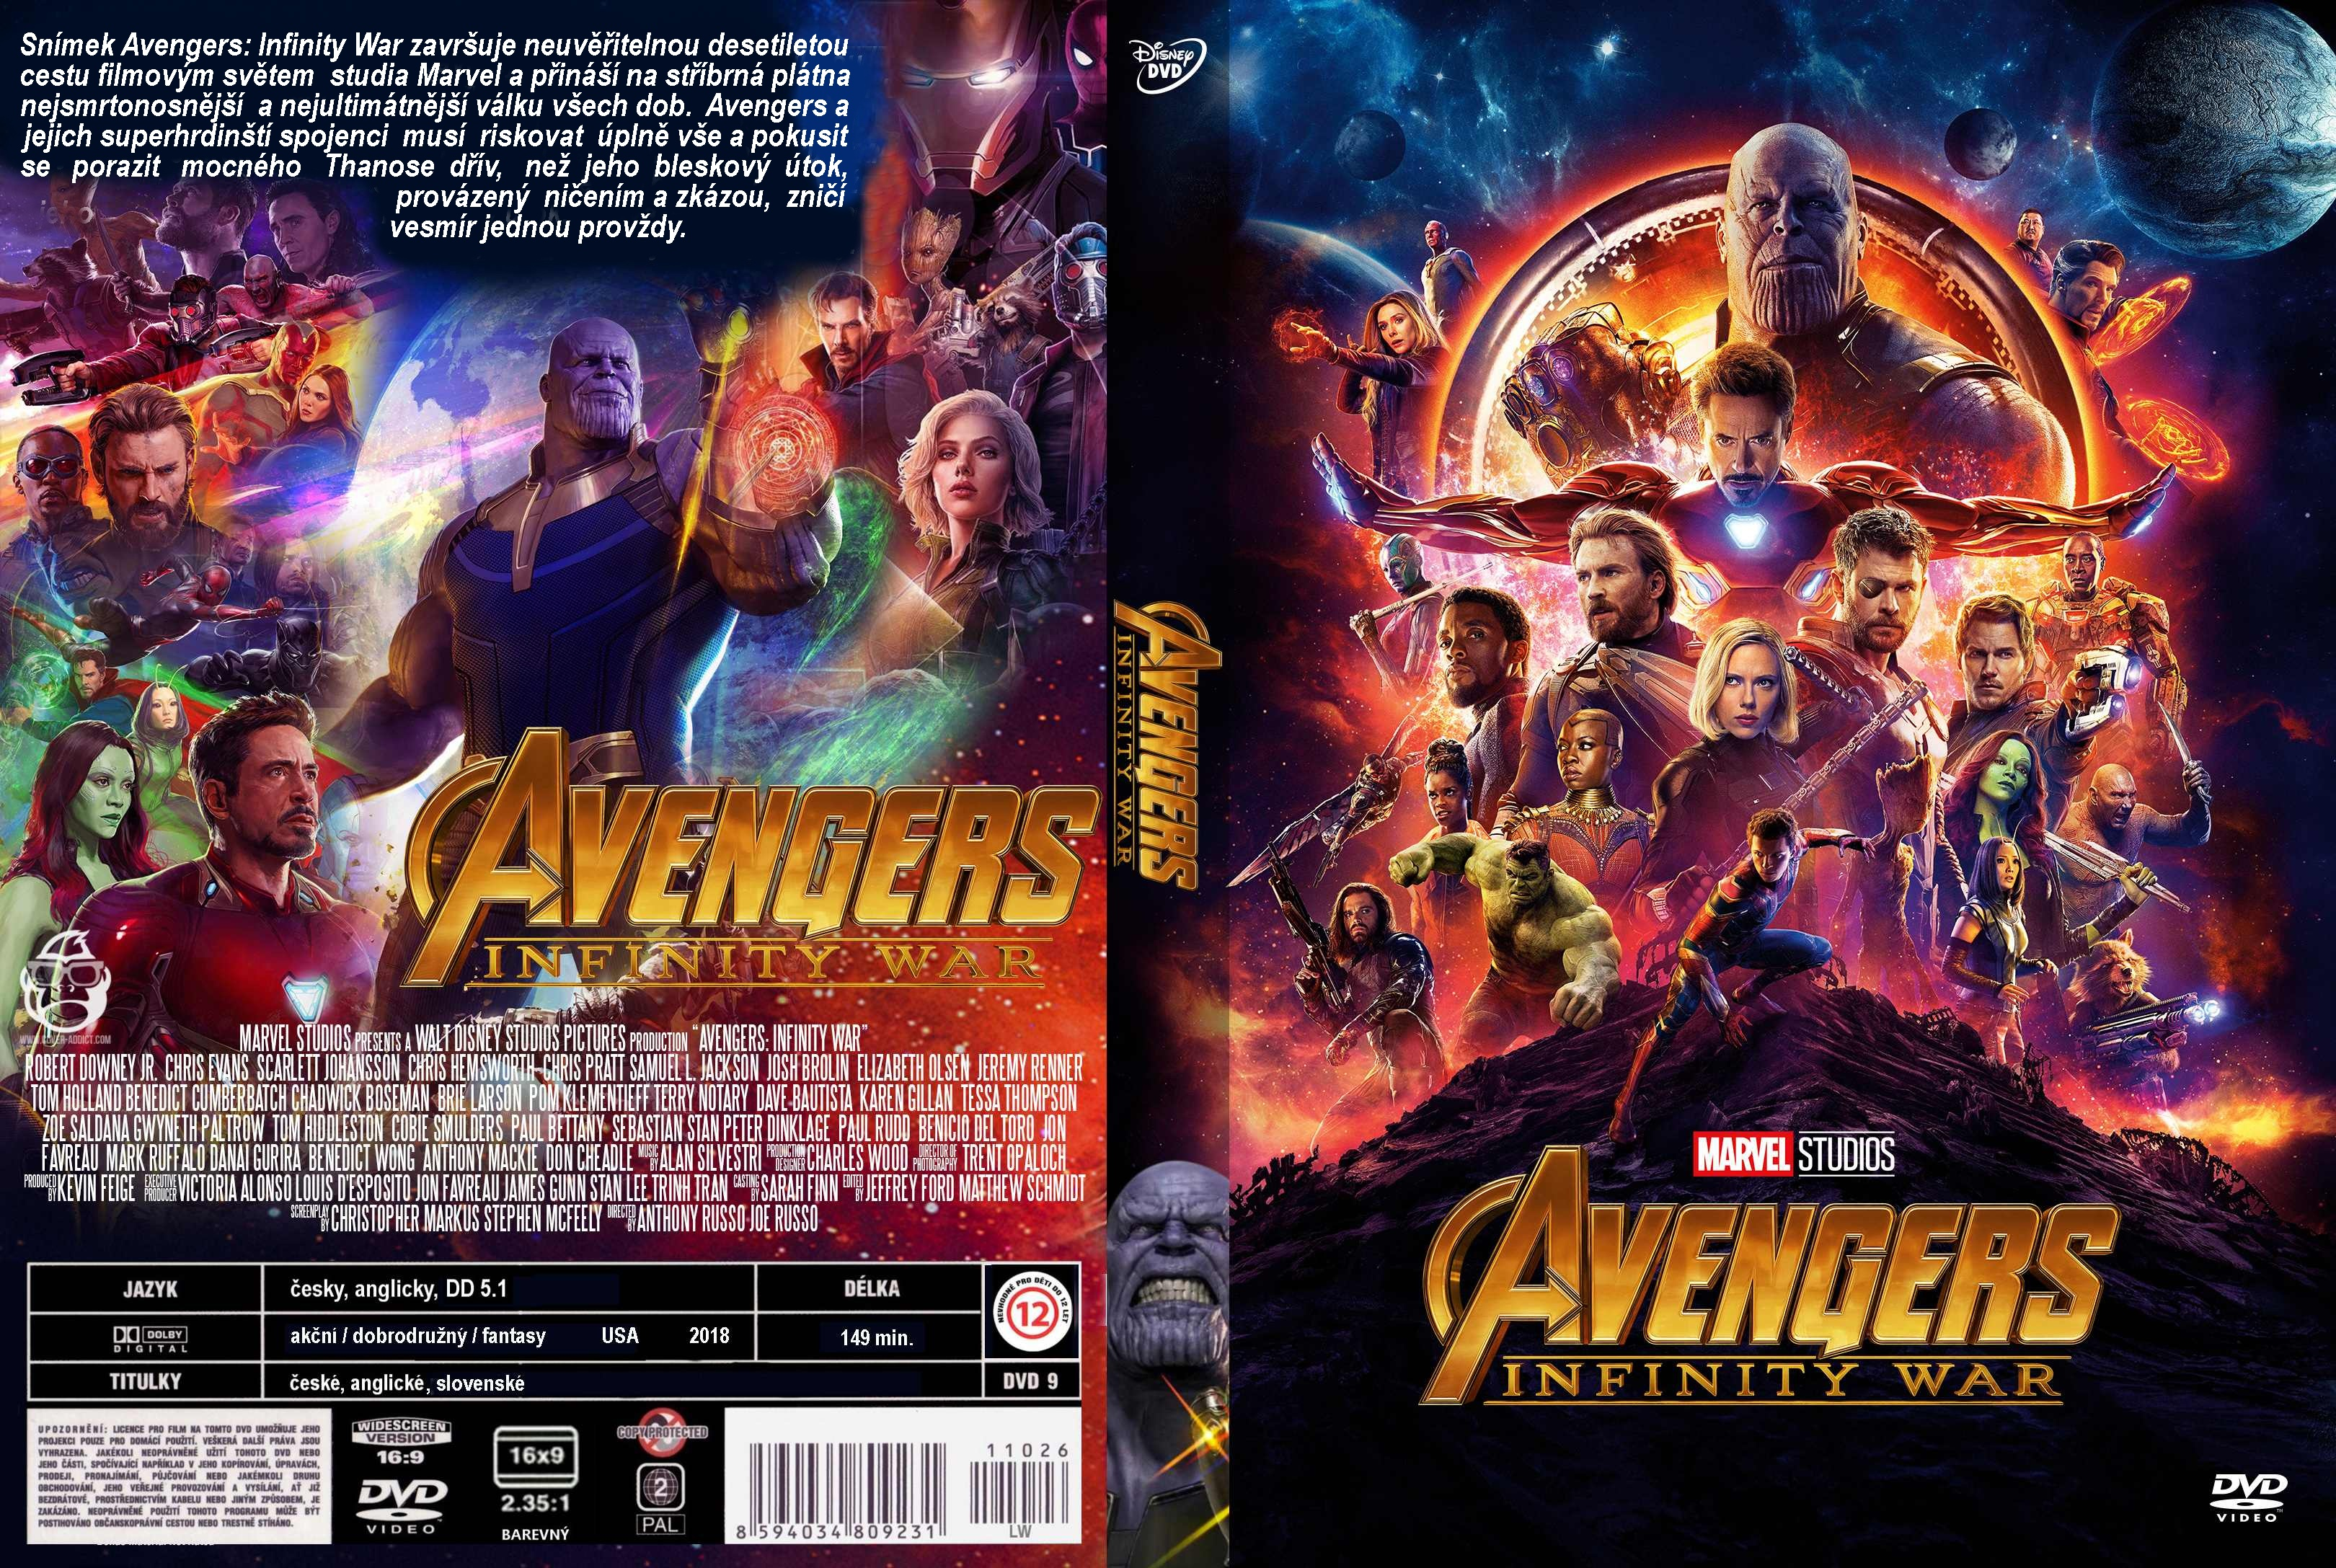 Covers Box Sk Avengers Infinity War 2018 High Quality Dvd Blueray Movie